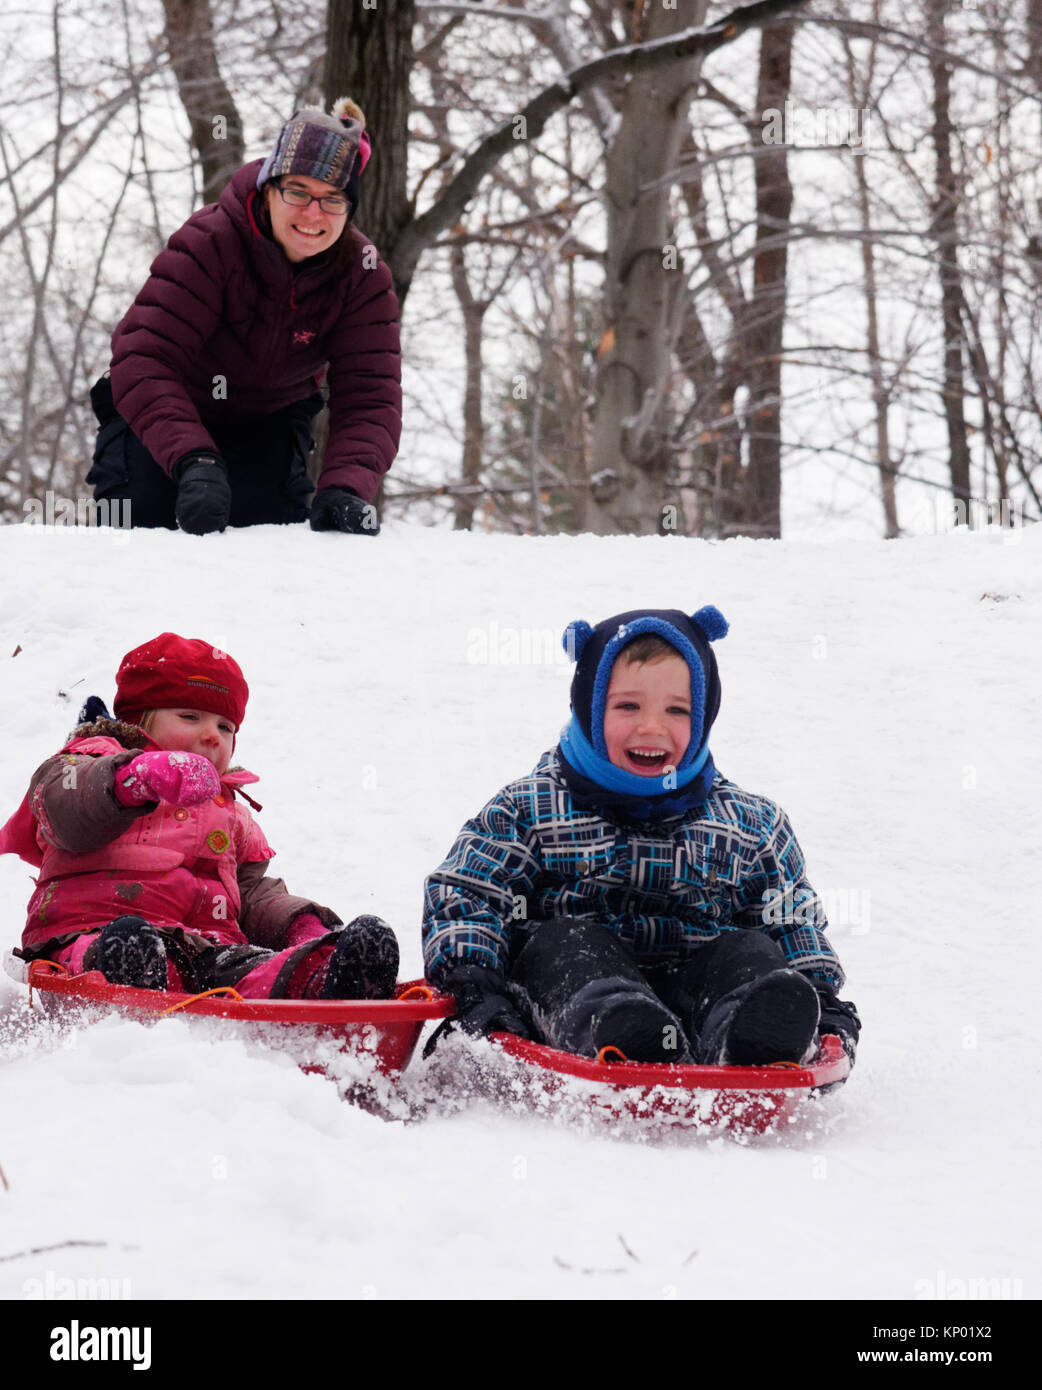 Brother and sisters (5 and 3 yrs old) sledging together in Quebec in winter, while mum looks on - Stock Image